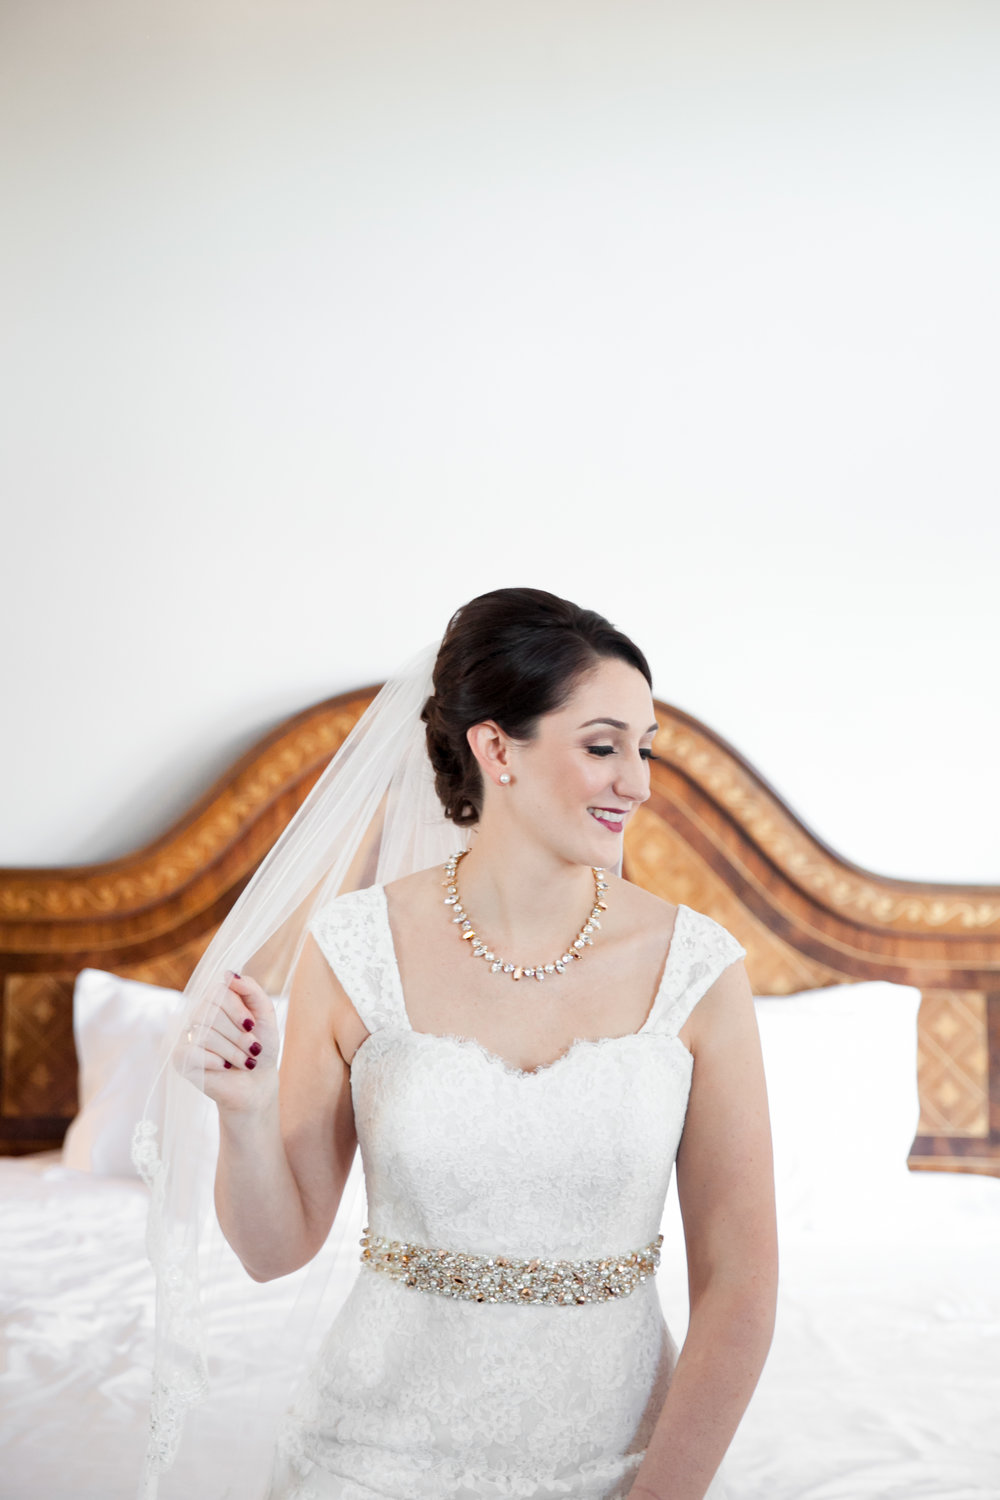 LisaDiederichPhotography_Lauren&MattWedding_Blog-22.jpg